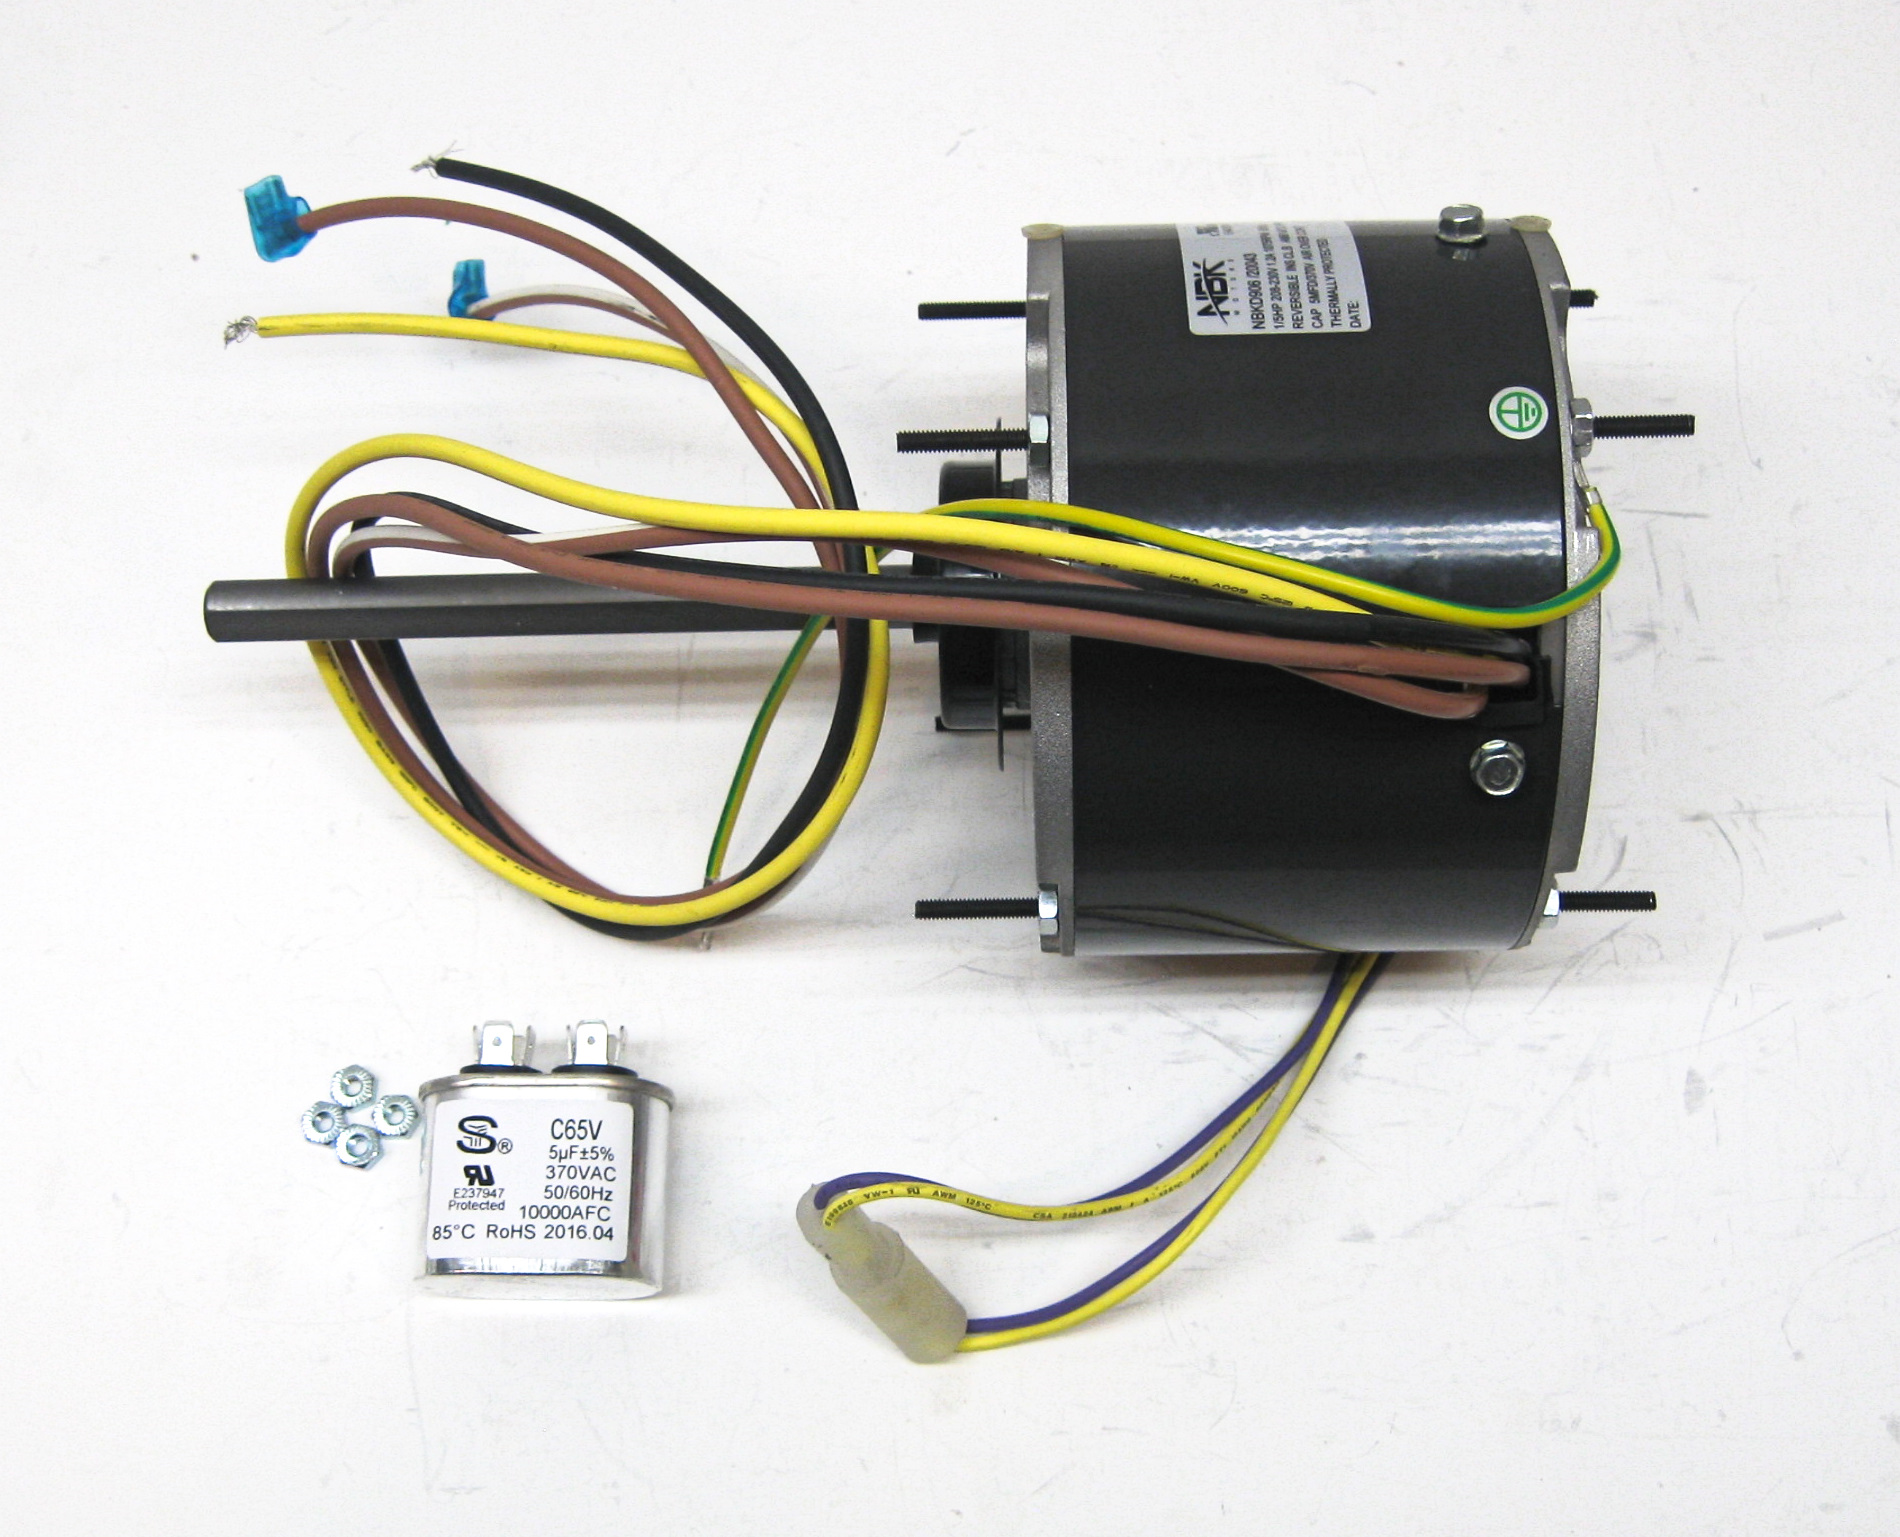 hight resolution of partsconnect nbk condenser fan motor and capacitor pcd906 walmart com condenser fan motor bearings condenser fan motor wiring